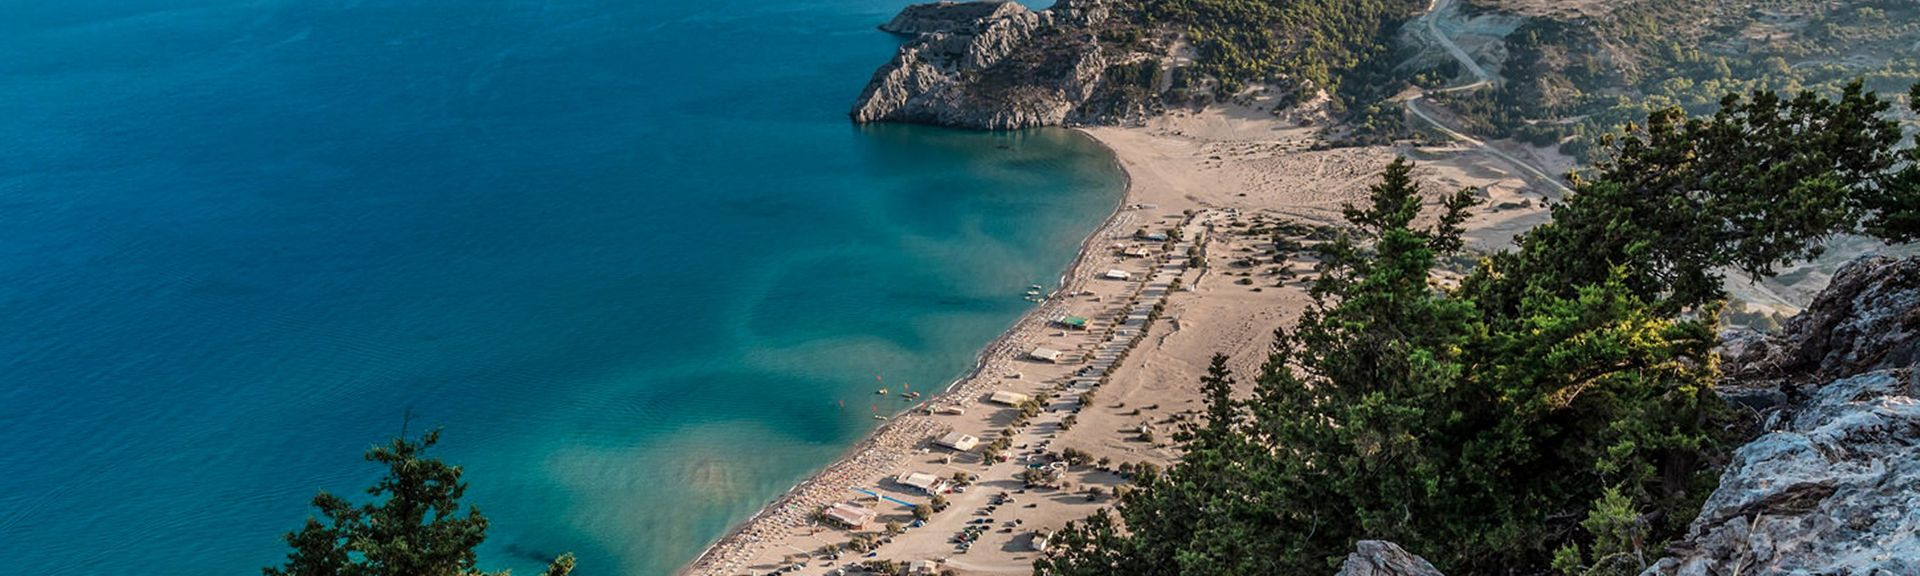 Vlycha Beach, Rhodes, South Aegean, Greece